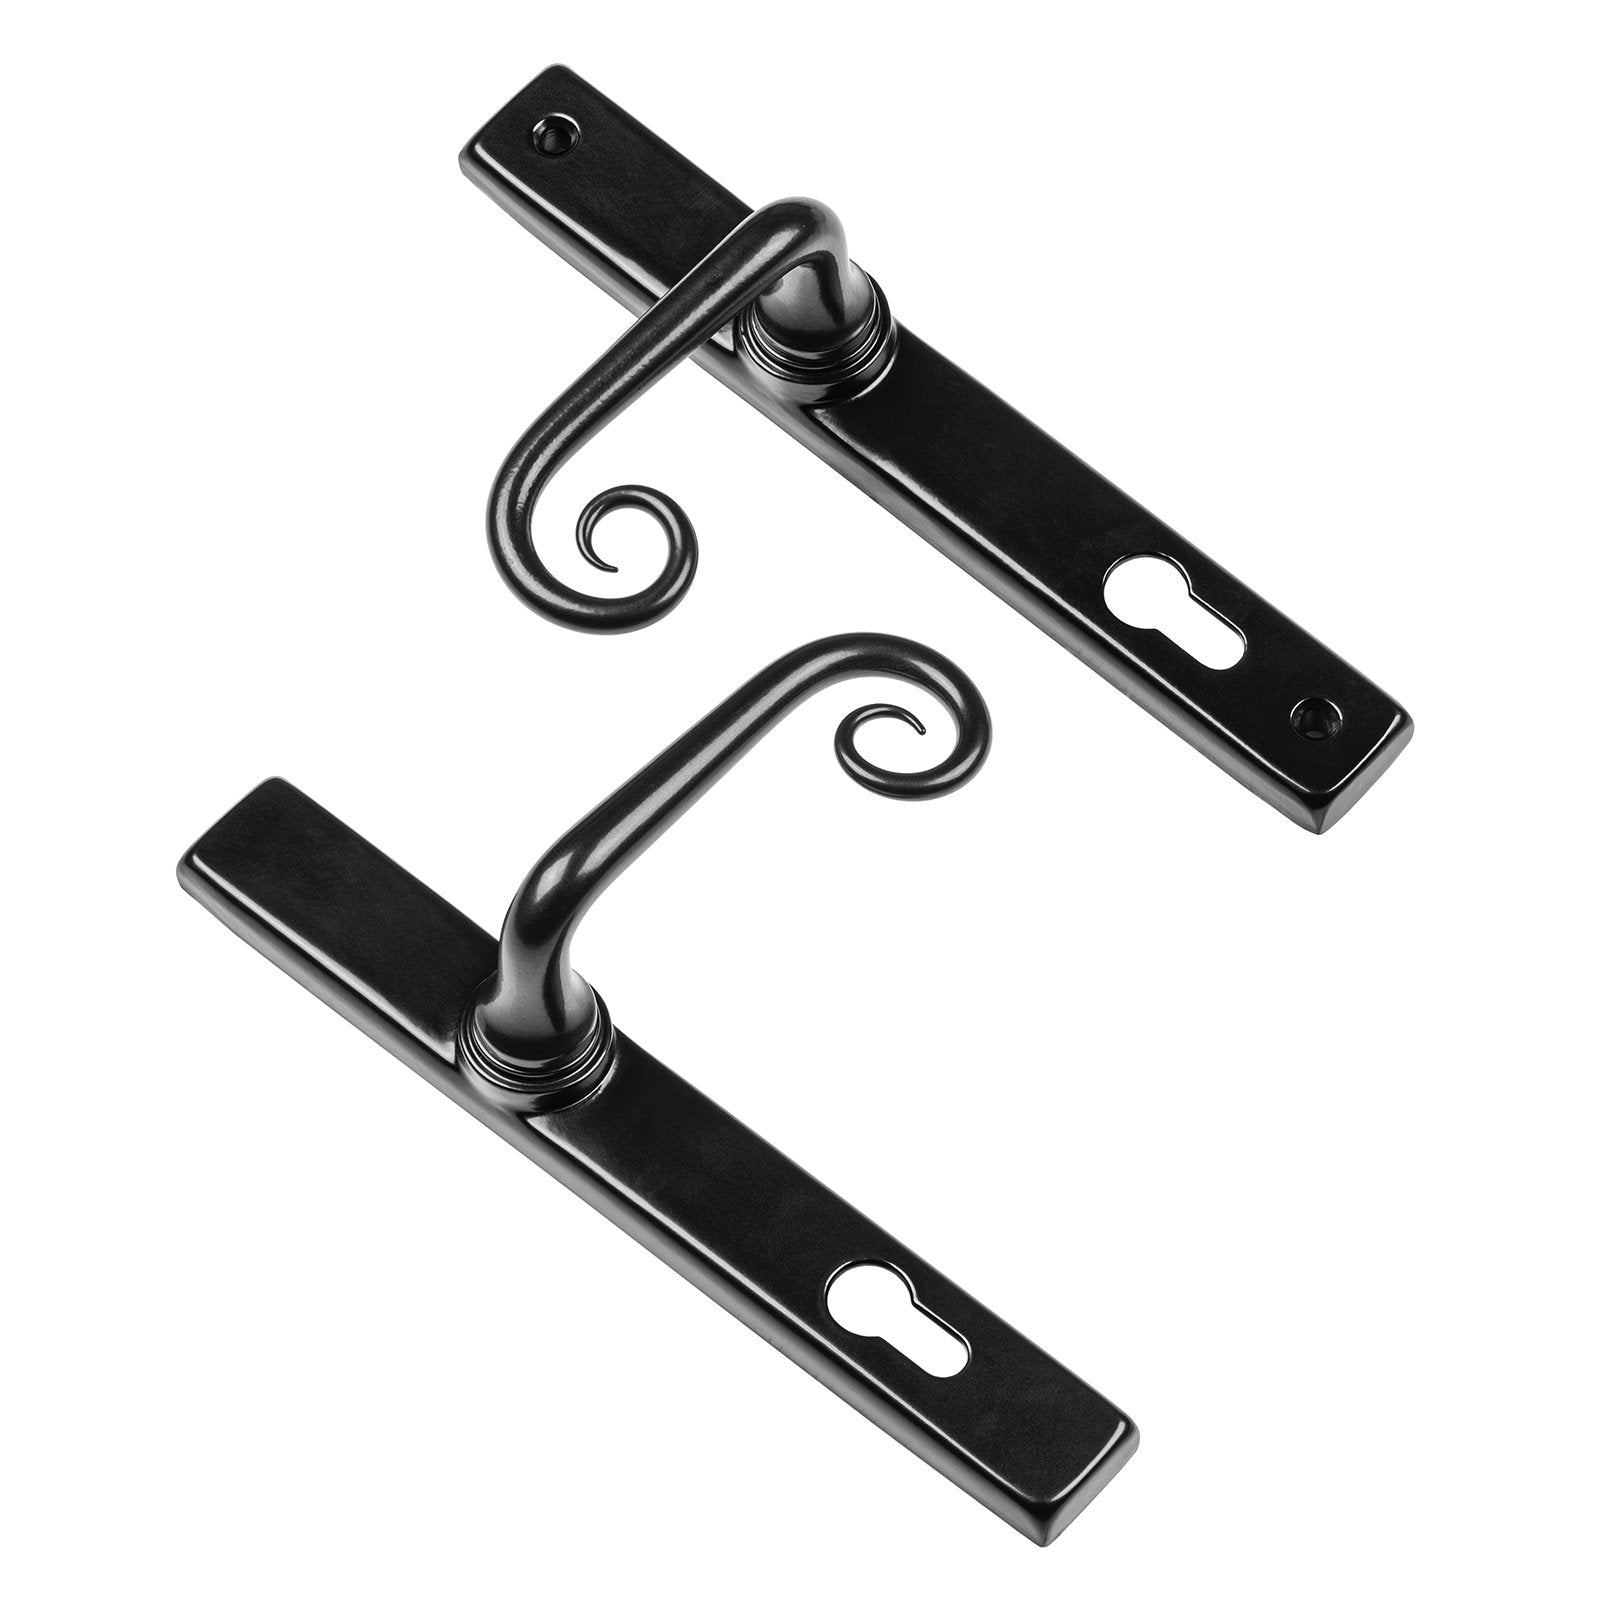 Curl multipoint sprung door handle SHOW